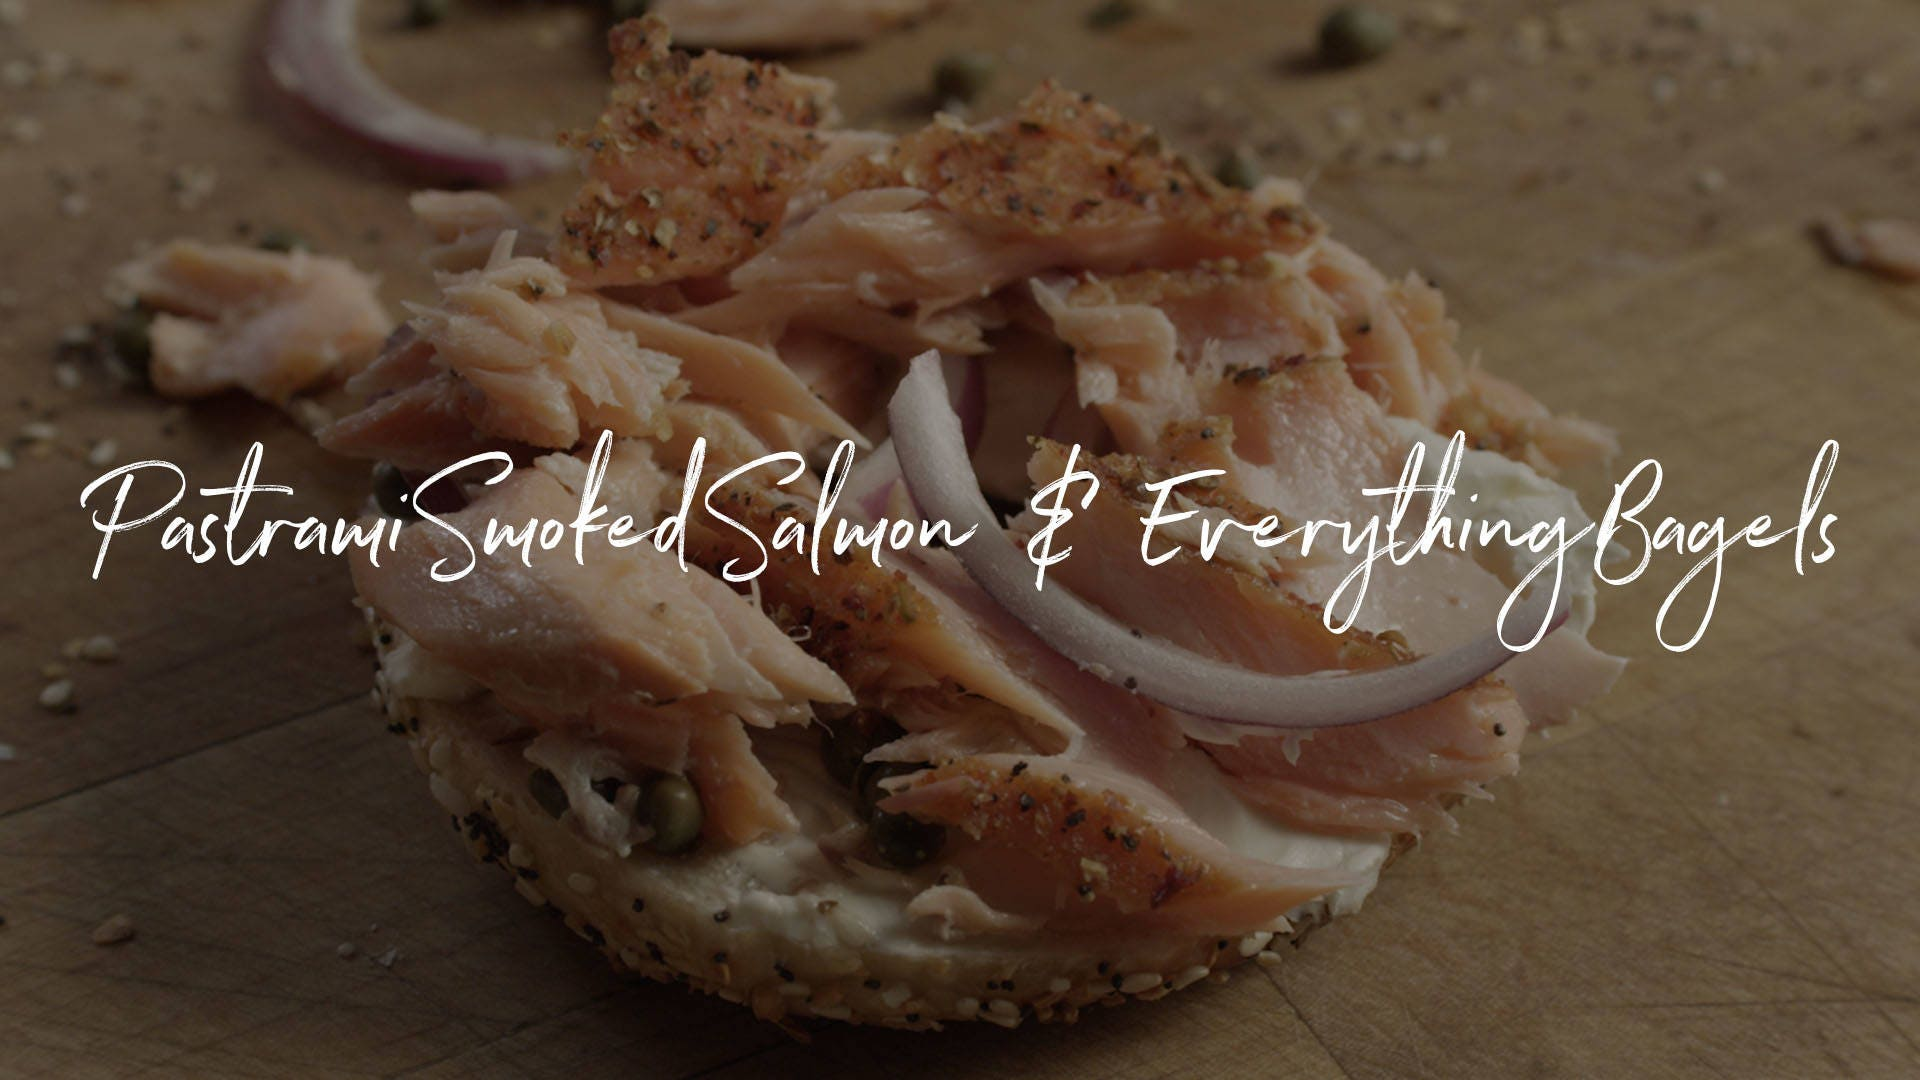 Pastrami Smoked Salmon & Everything Bagels Recipe